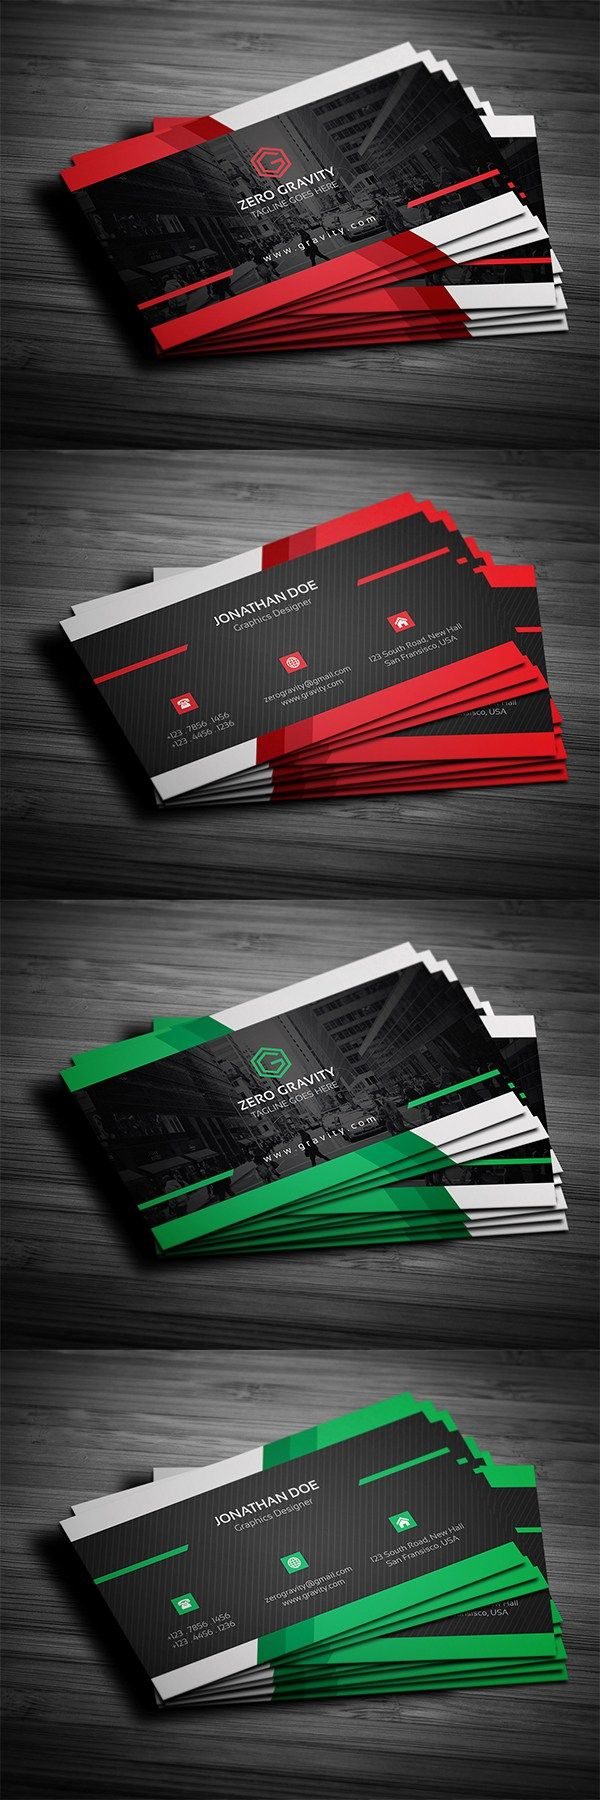 164 best business card images on pinterest psd templates business our unique business cards designs have been created to help you make your own business cards with ease all business cards are fully customizable and come reheart Images